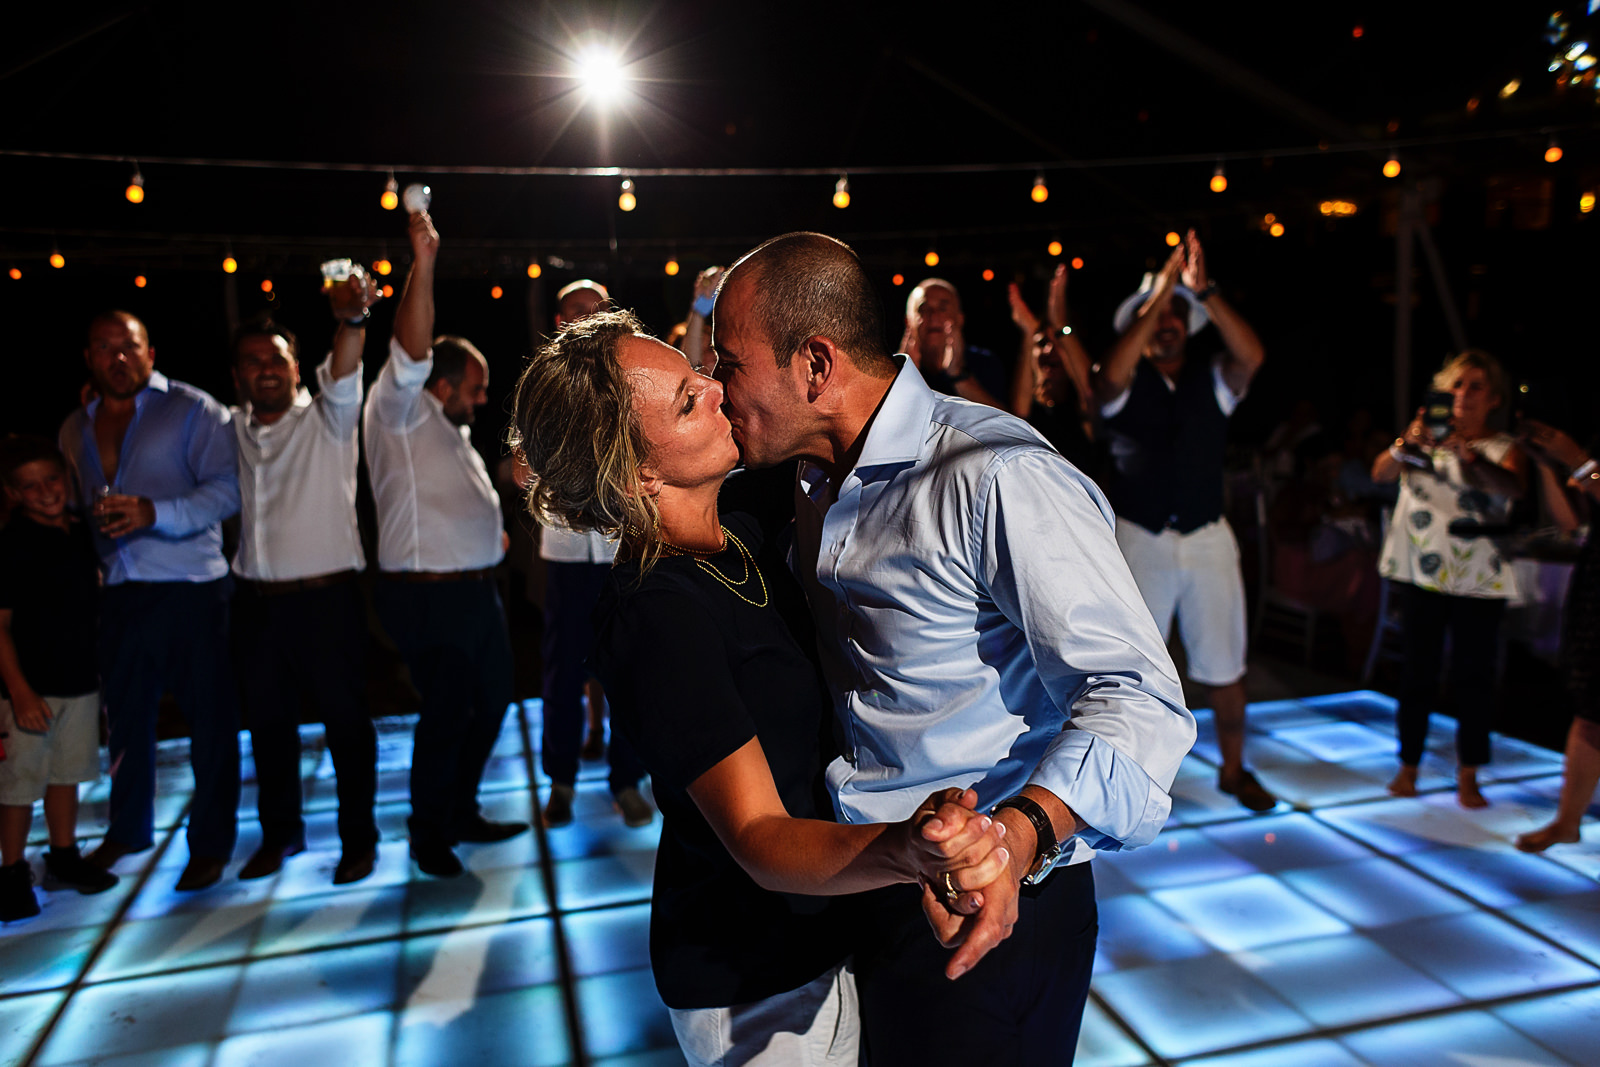 Bride and groom kissing and dancing in front of their wedding guests in the middle of the dance floor